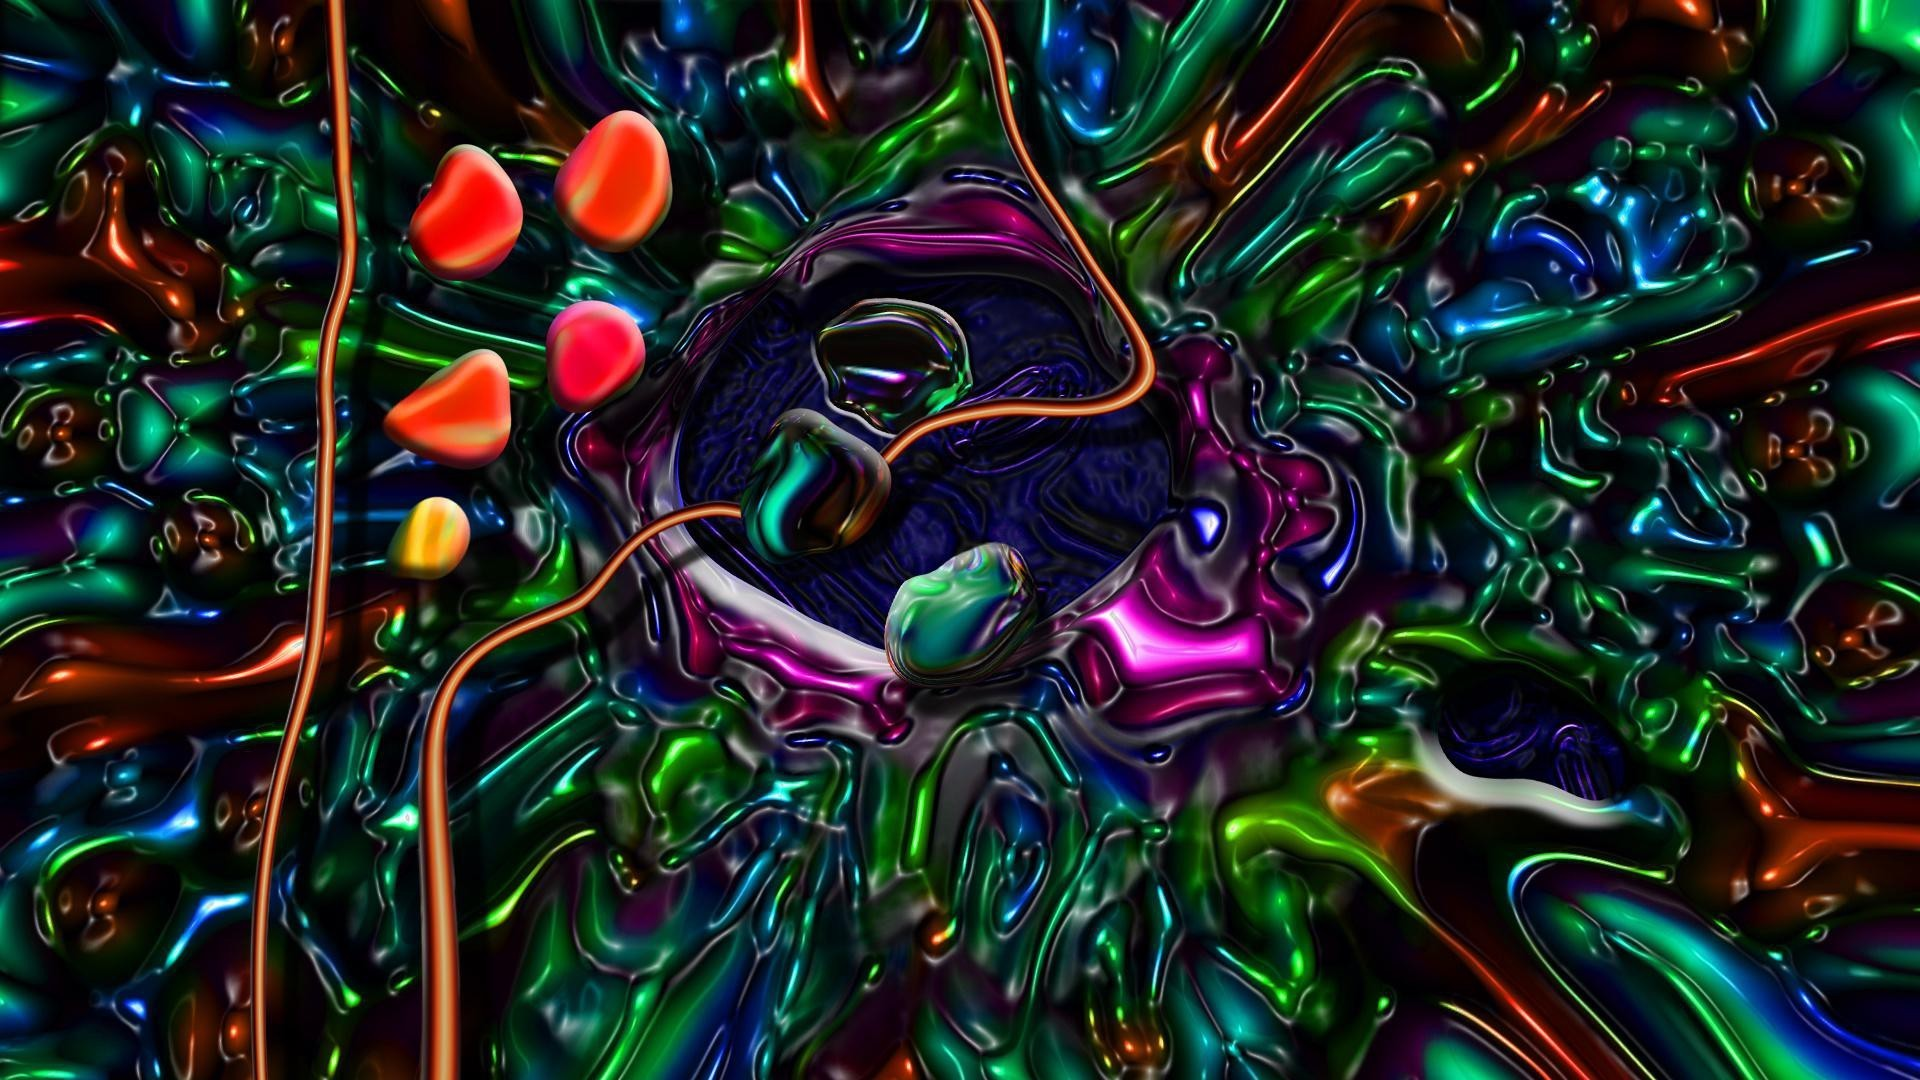 Trippy 3d Wallpaper 67 Pictures